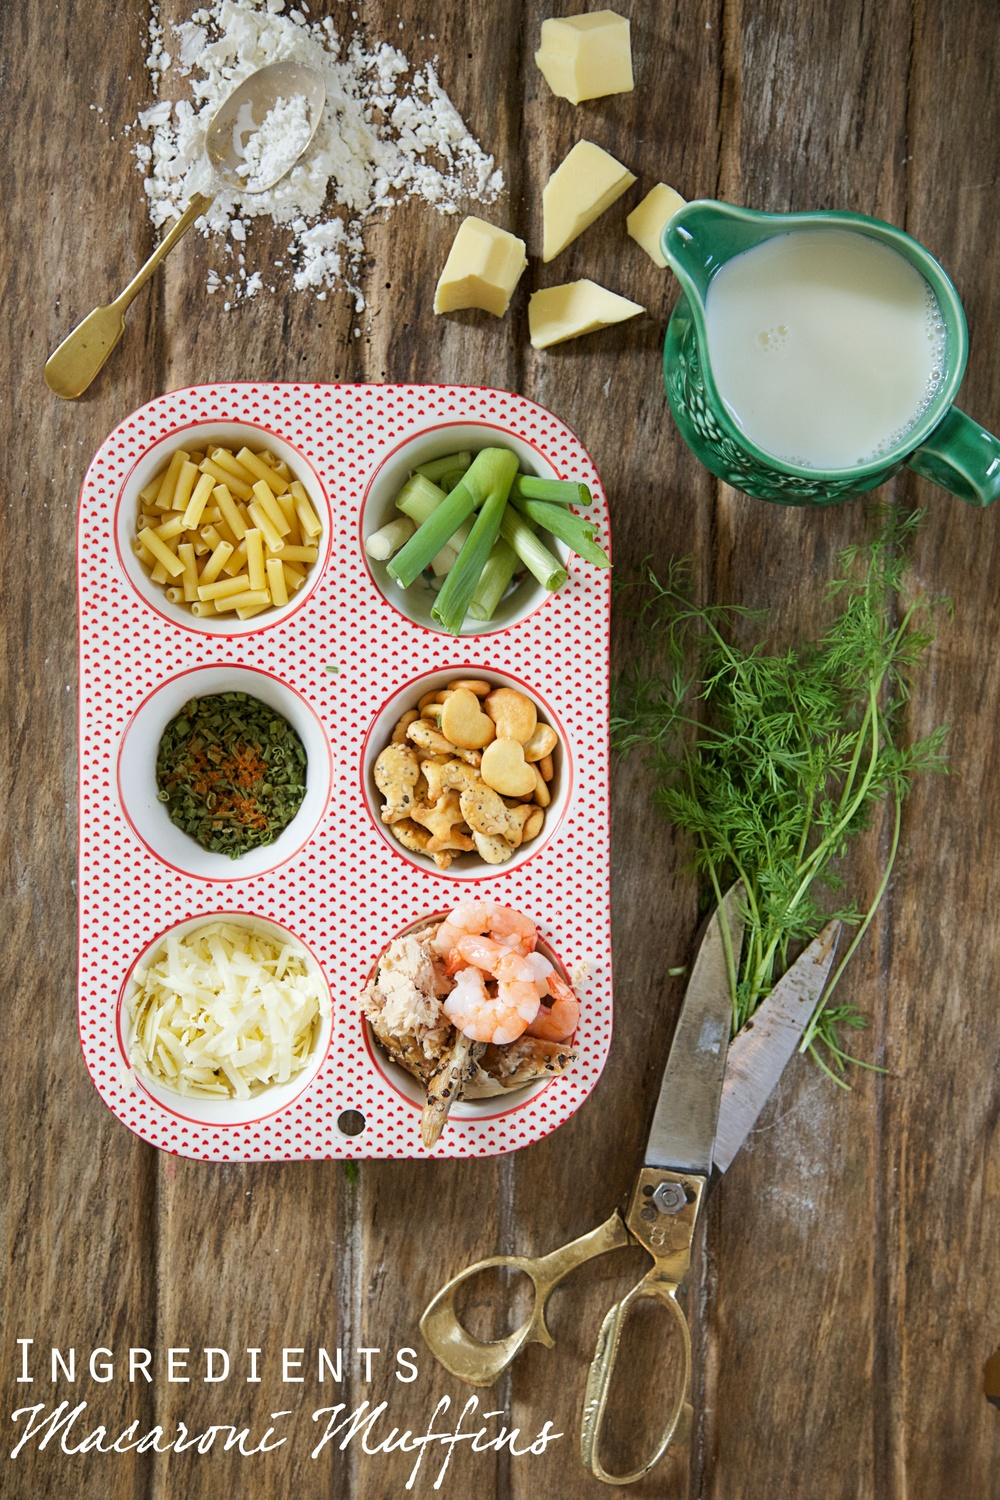 Seafood Macaroni Ingredients